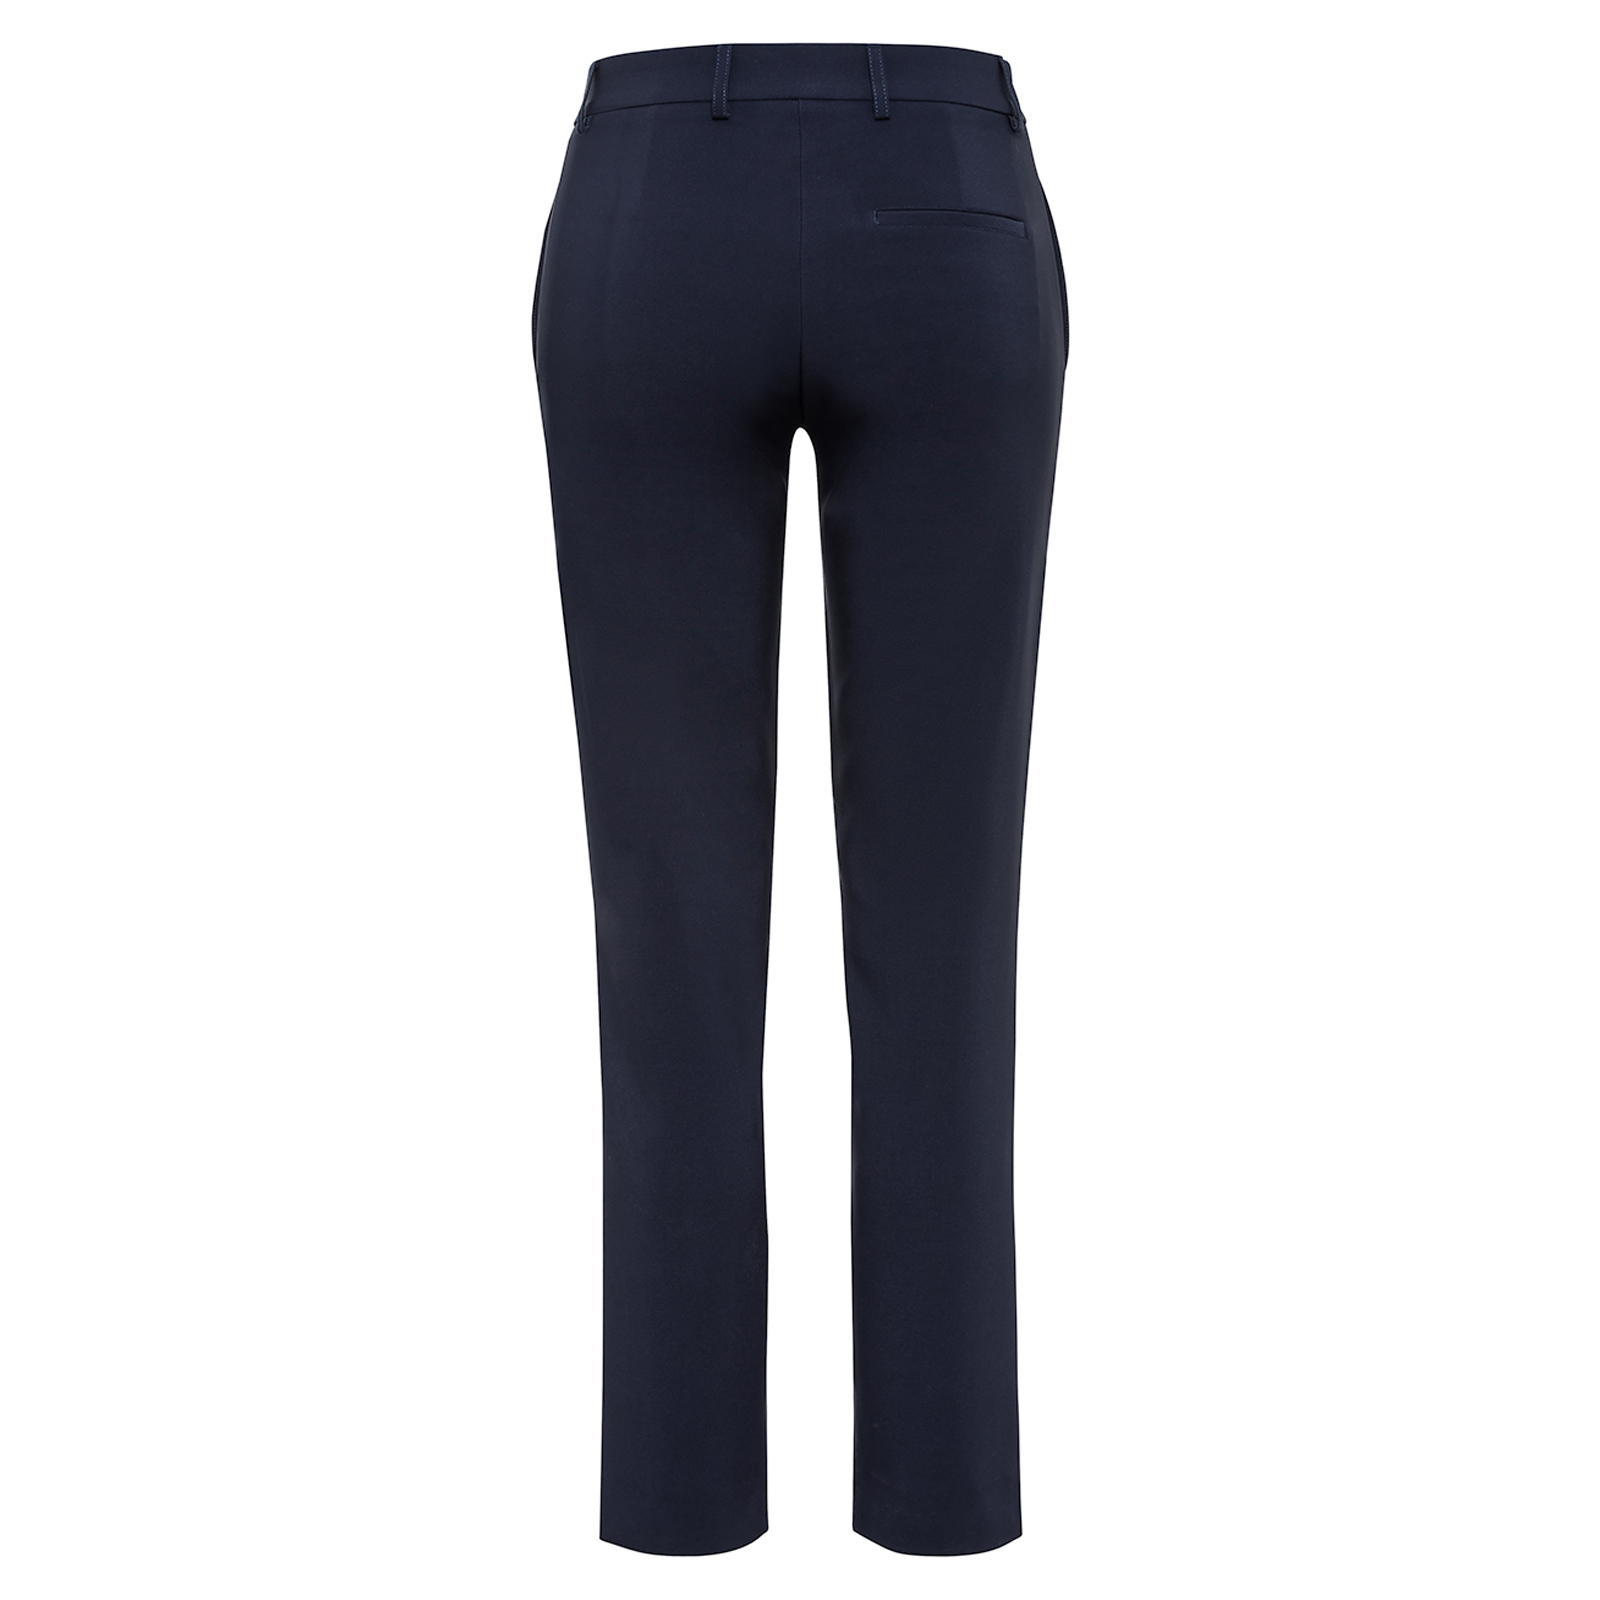 Damen 7/8-Golfhose mit Stretch-Funktion